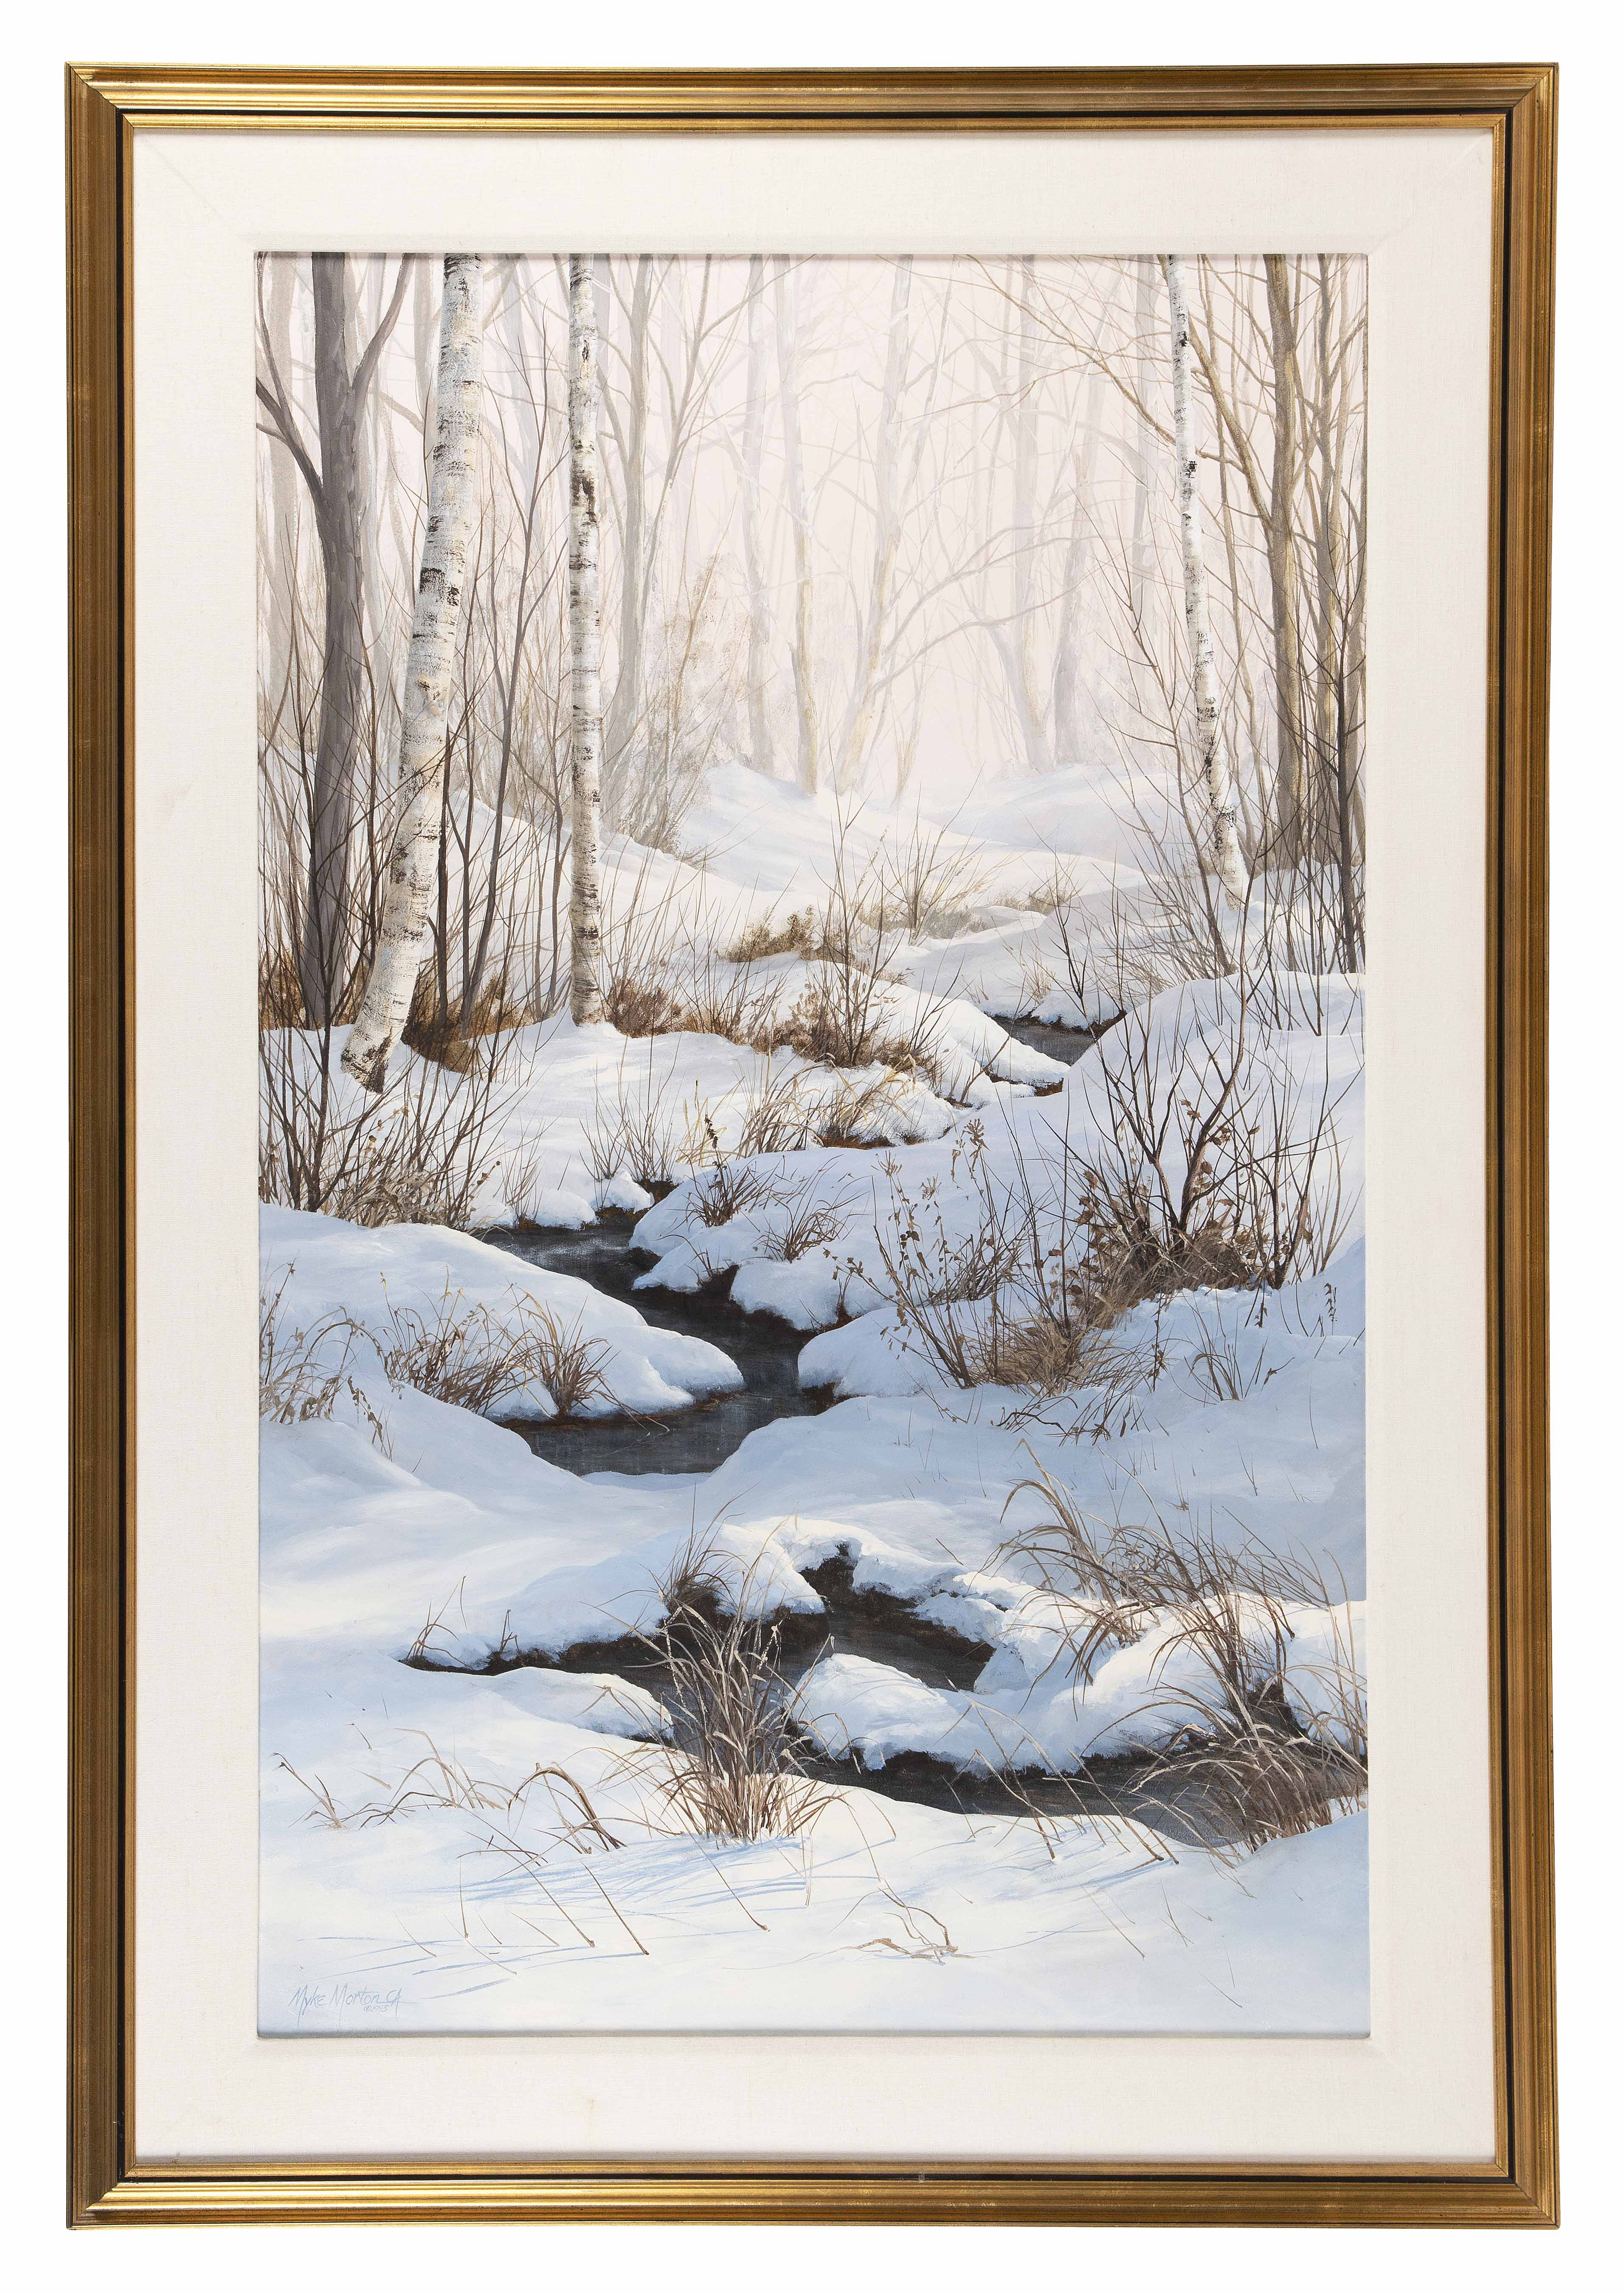 MYKE MORTON (New Hampshire, 1940-2008), Snow-filled landscape with birch trees and winding stream., Oil on board, 42